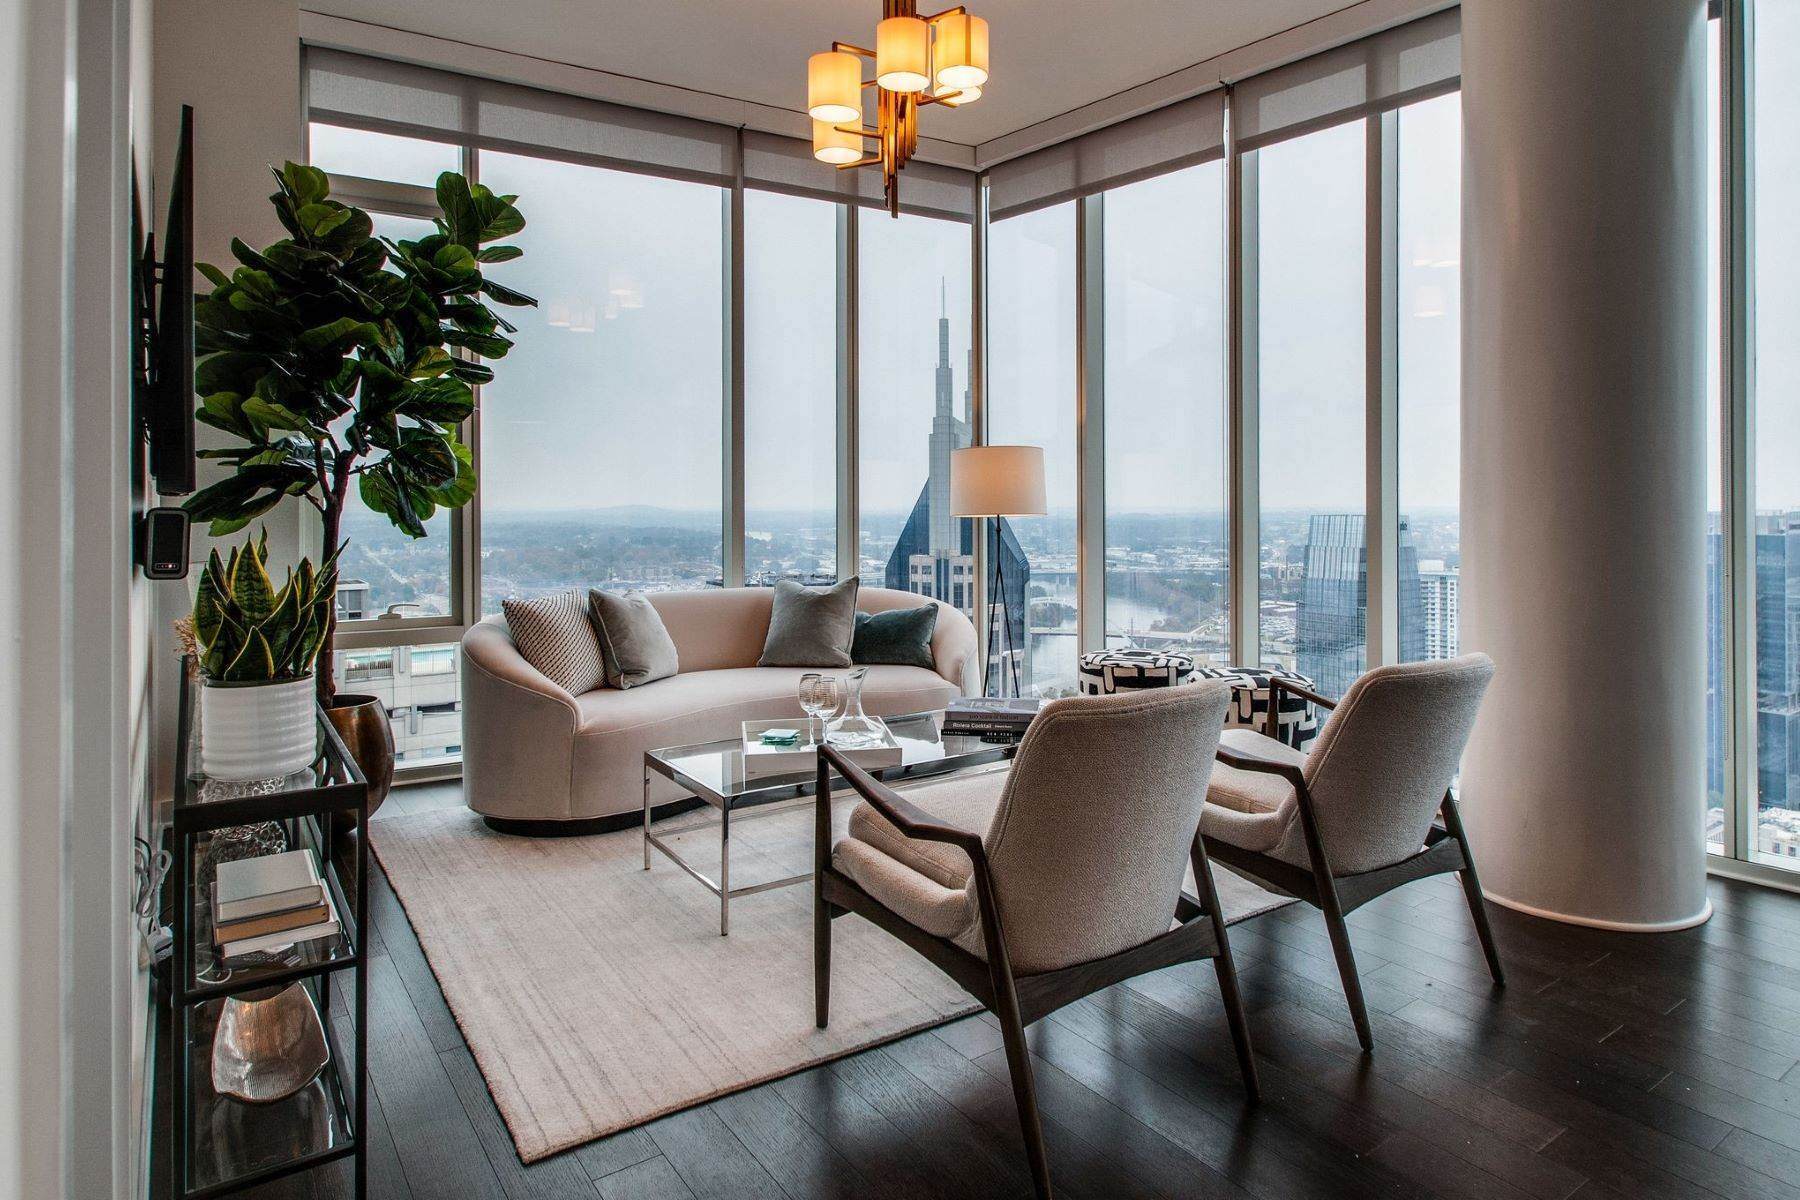 Condominiums для того Продажа на 515 Church St Unit #3406, Nashville, Tn, 37219 515 Church St Unit #3406, Unit# 3406 Nashville, Теннесси 37219 Соединенные Штаты